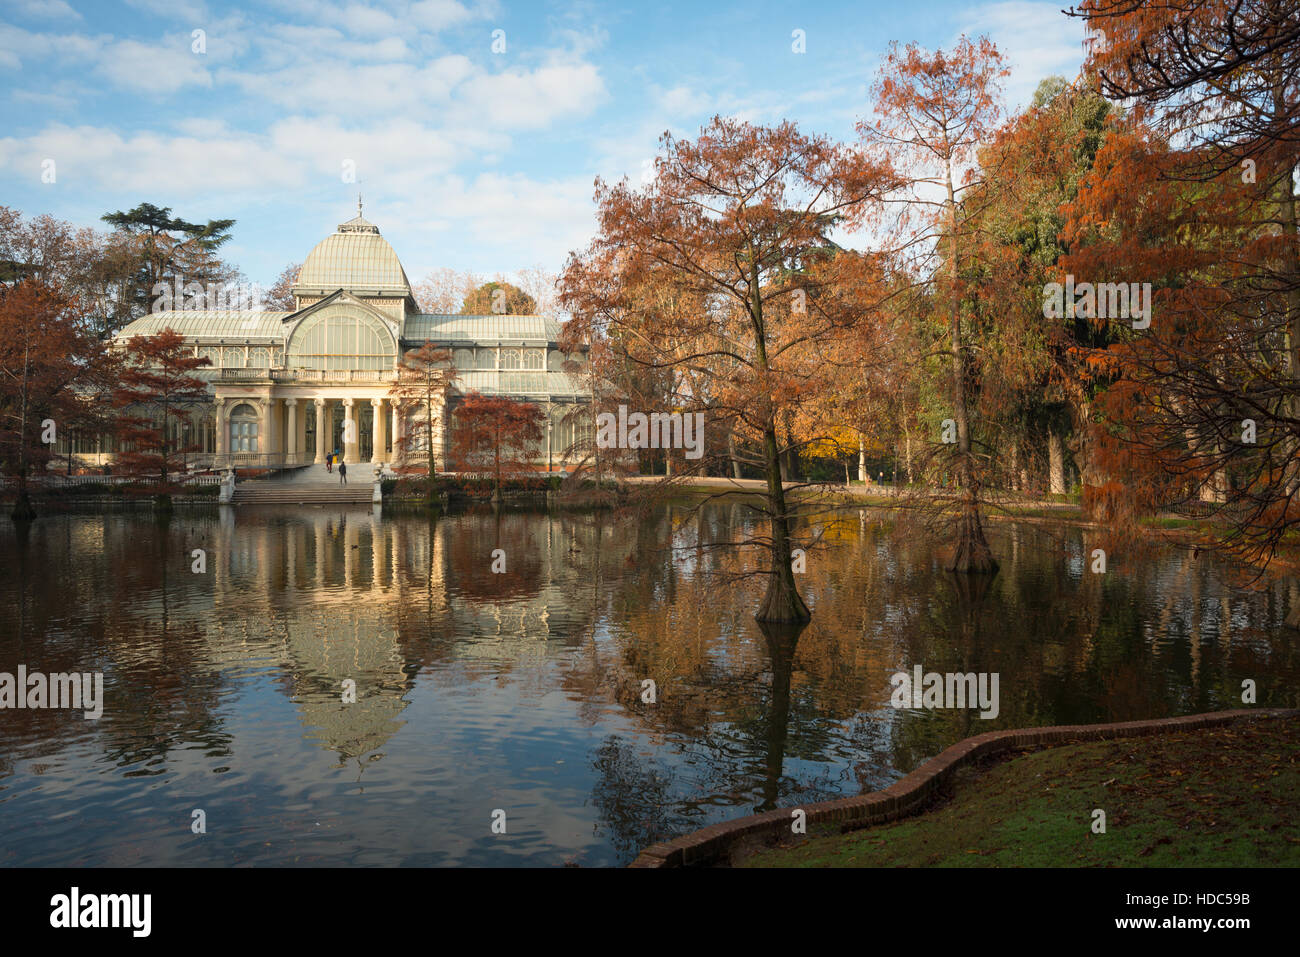 crystal-palace-in-the-buen-retiro-park-m